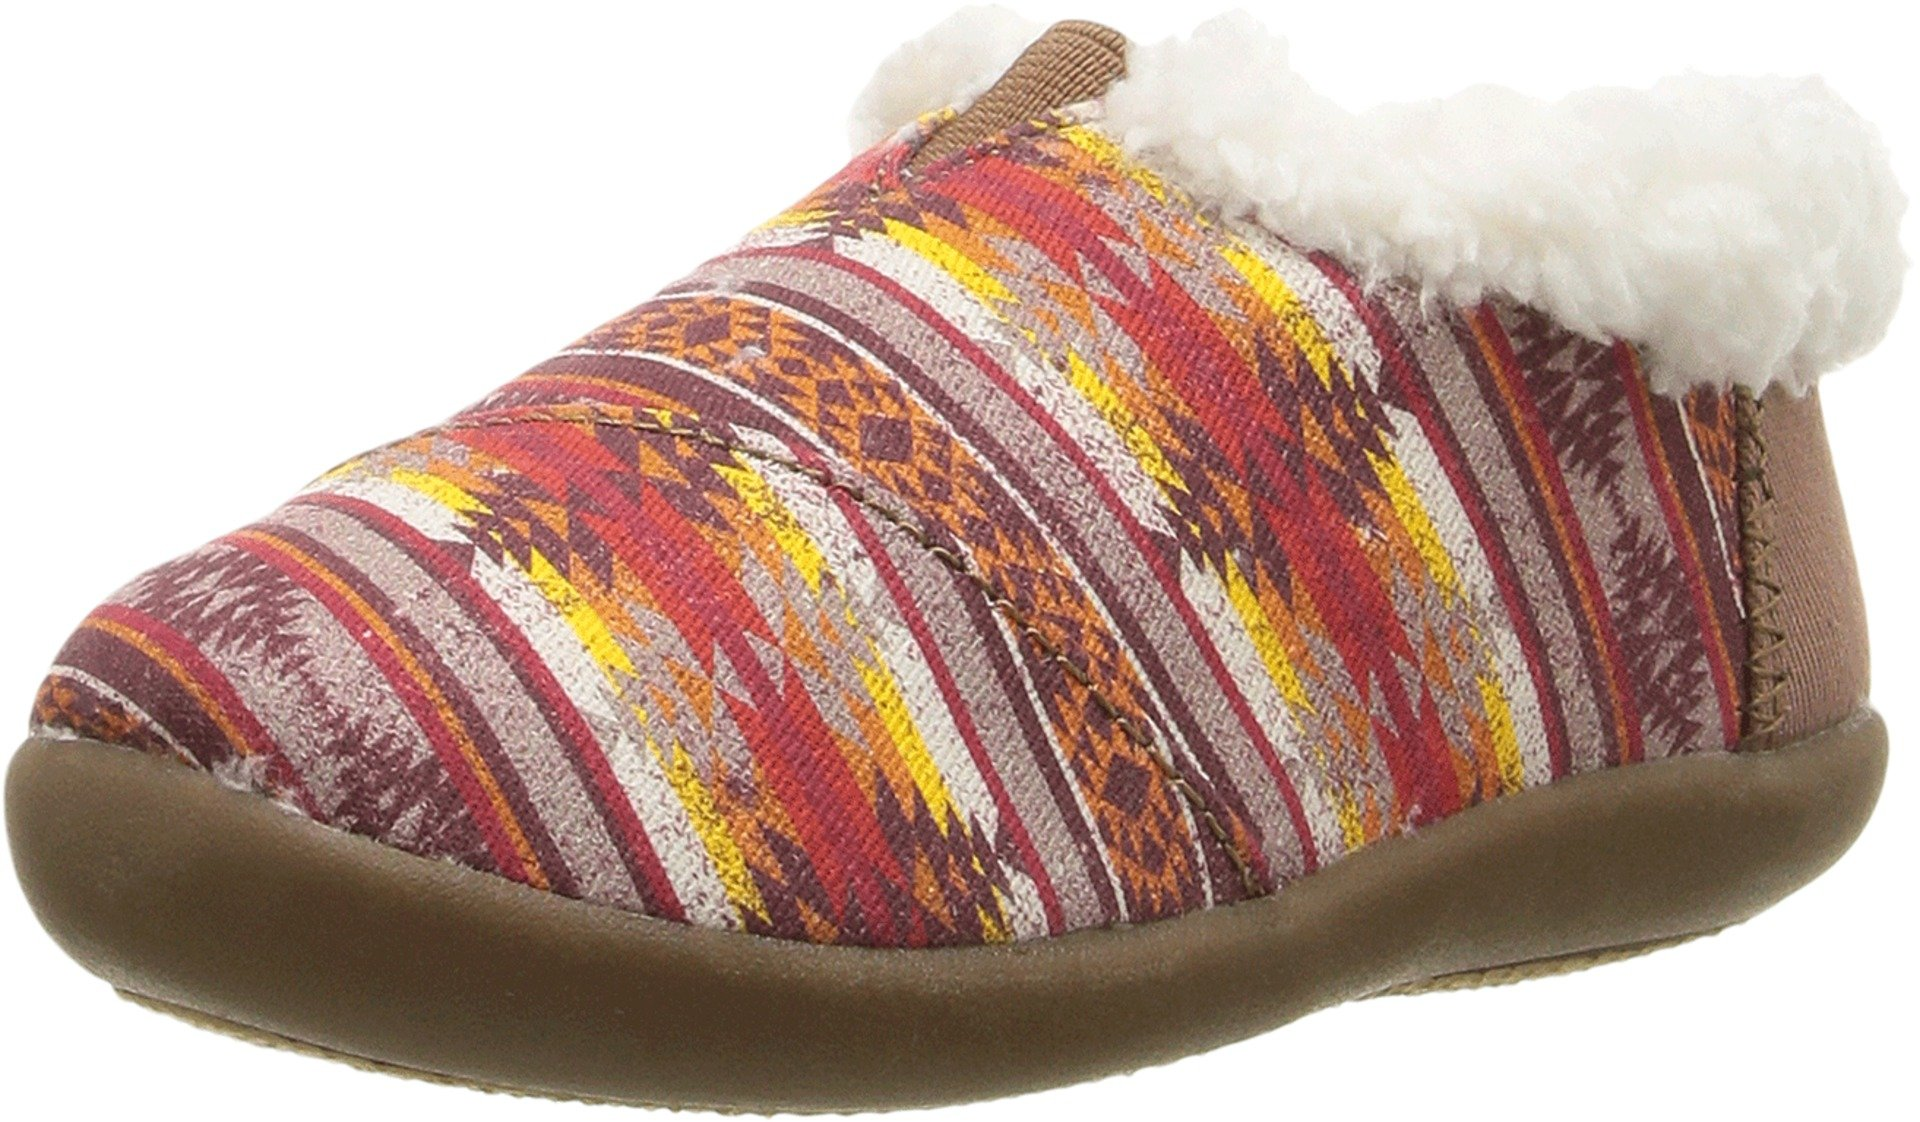 Toms House Slippers Brown Twill Sunset Stripe 10009131 Tiny 3 by TOMS